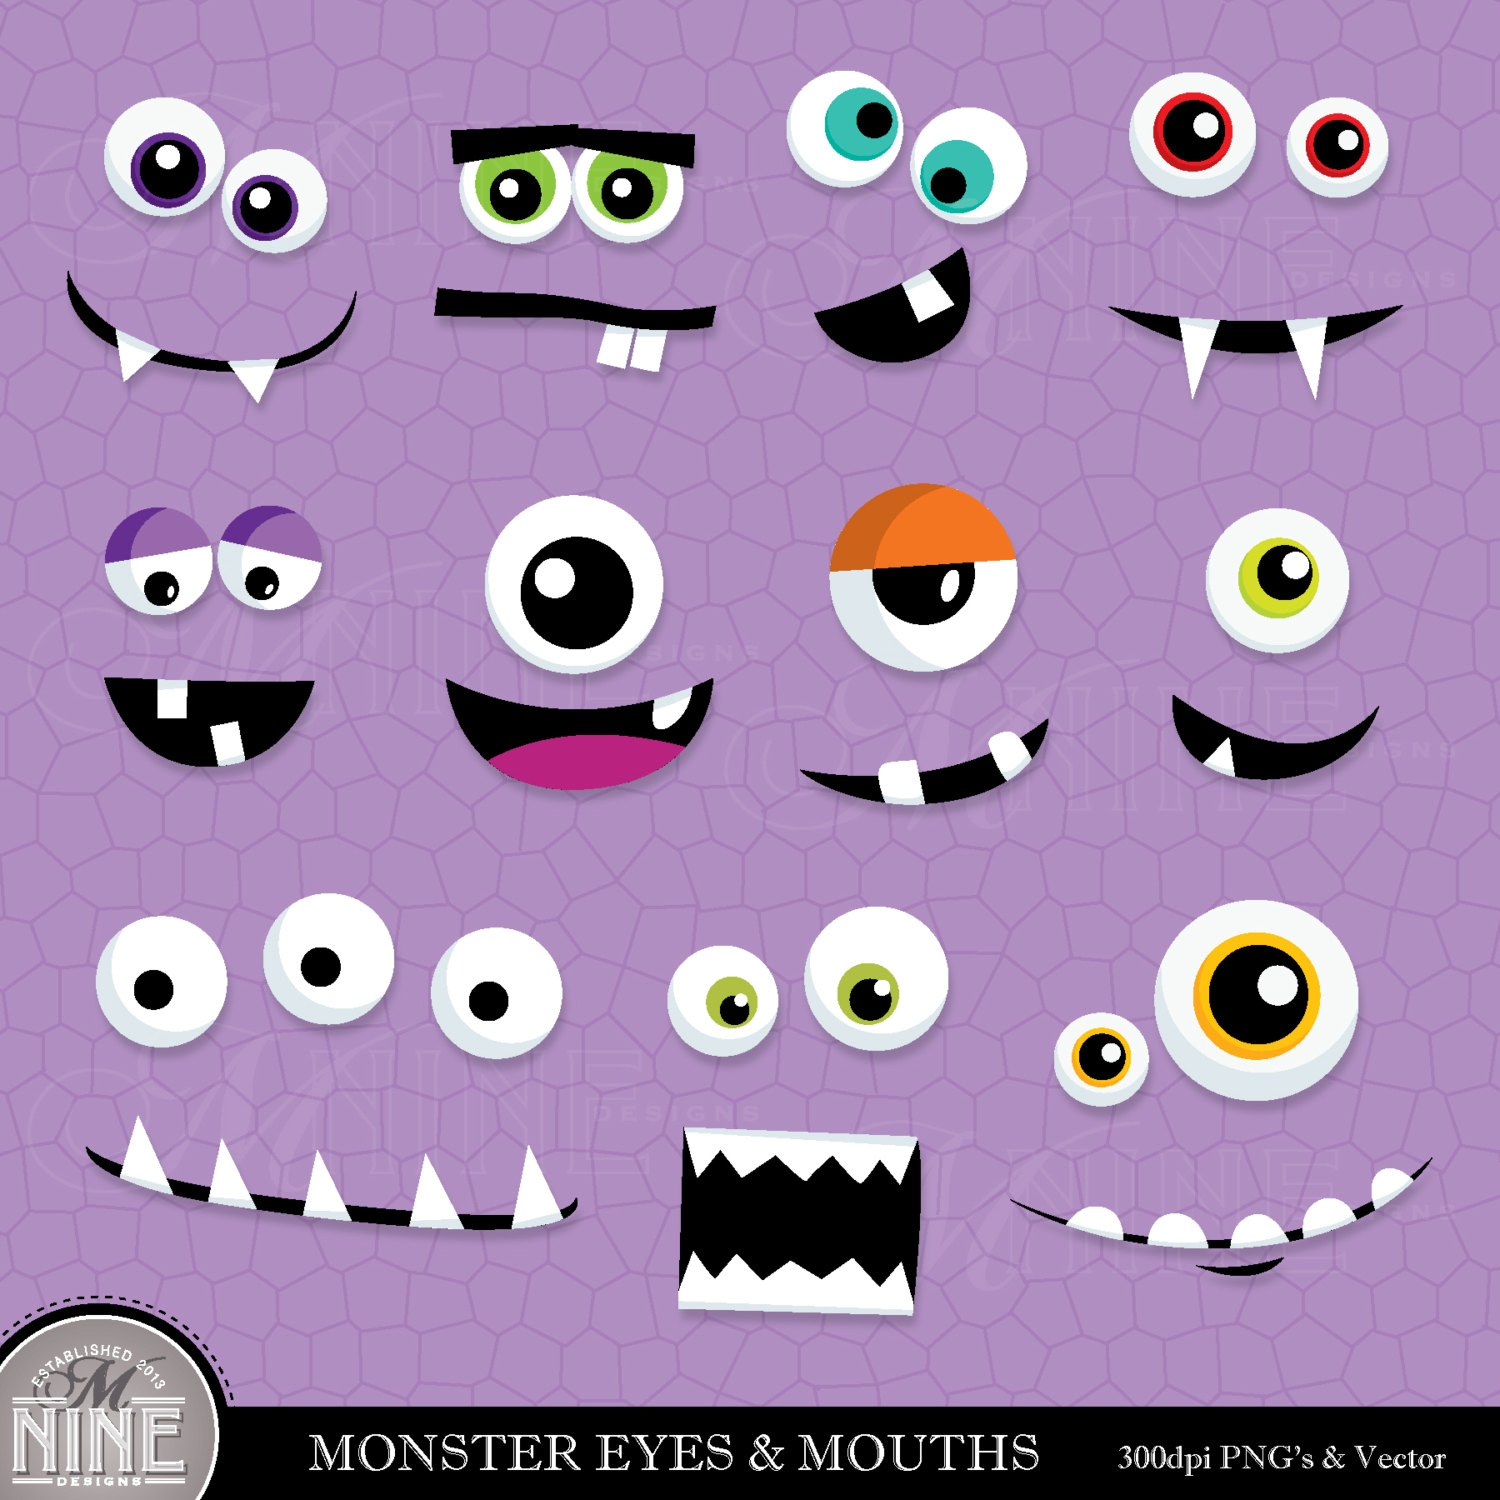 hight resolution of monster eyes free clipart